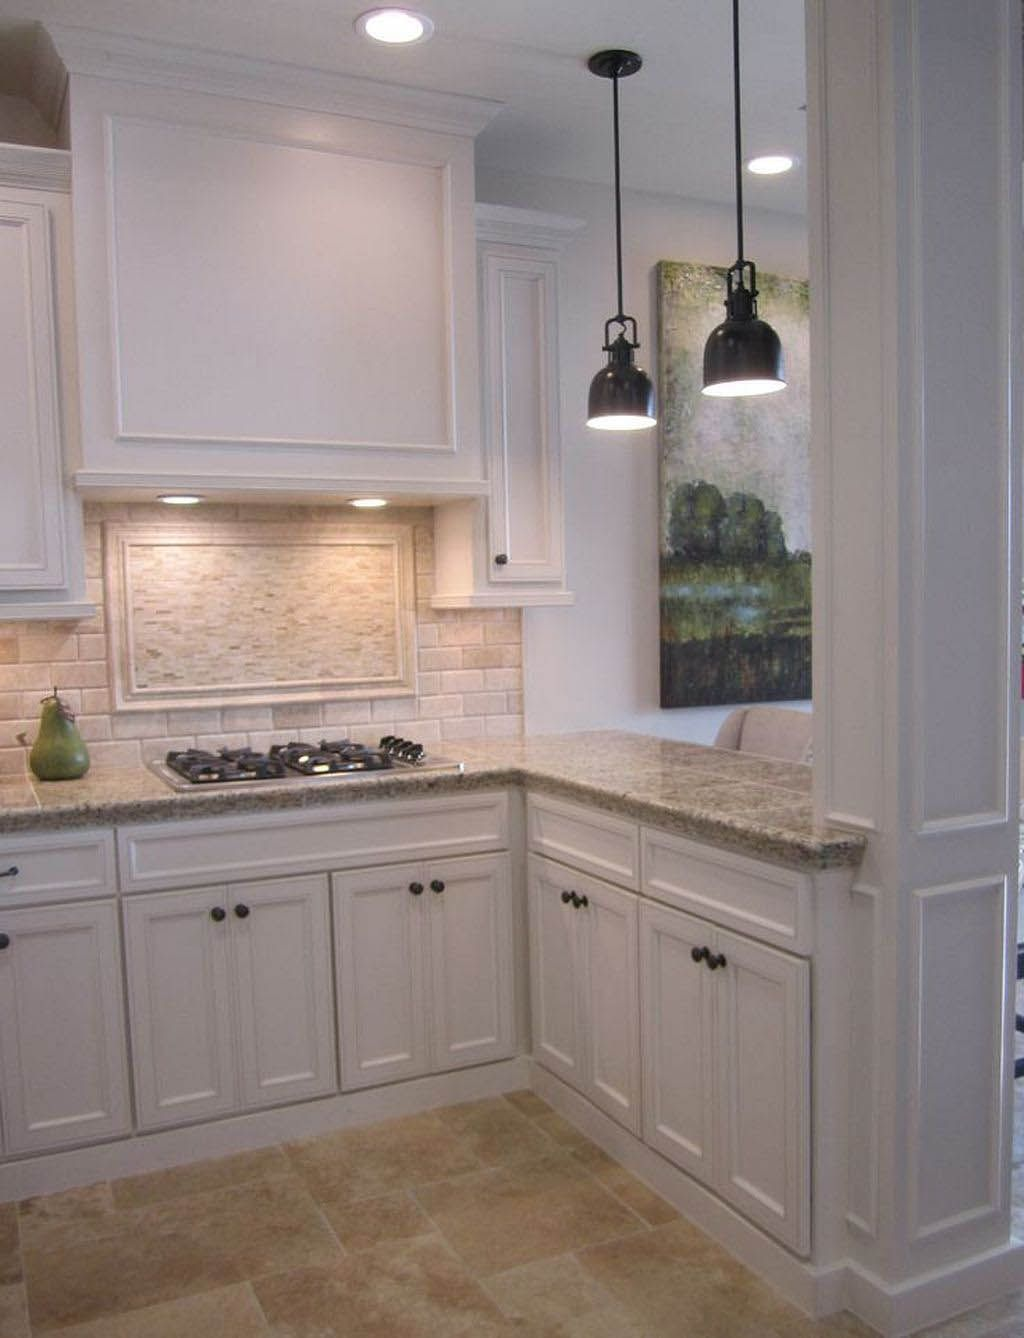 Rustic Kitchen Cabinets Antique White Kitchen Backsplash For White Cabinets Beige Kitchen